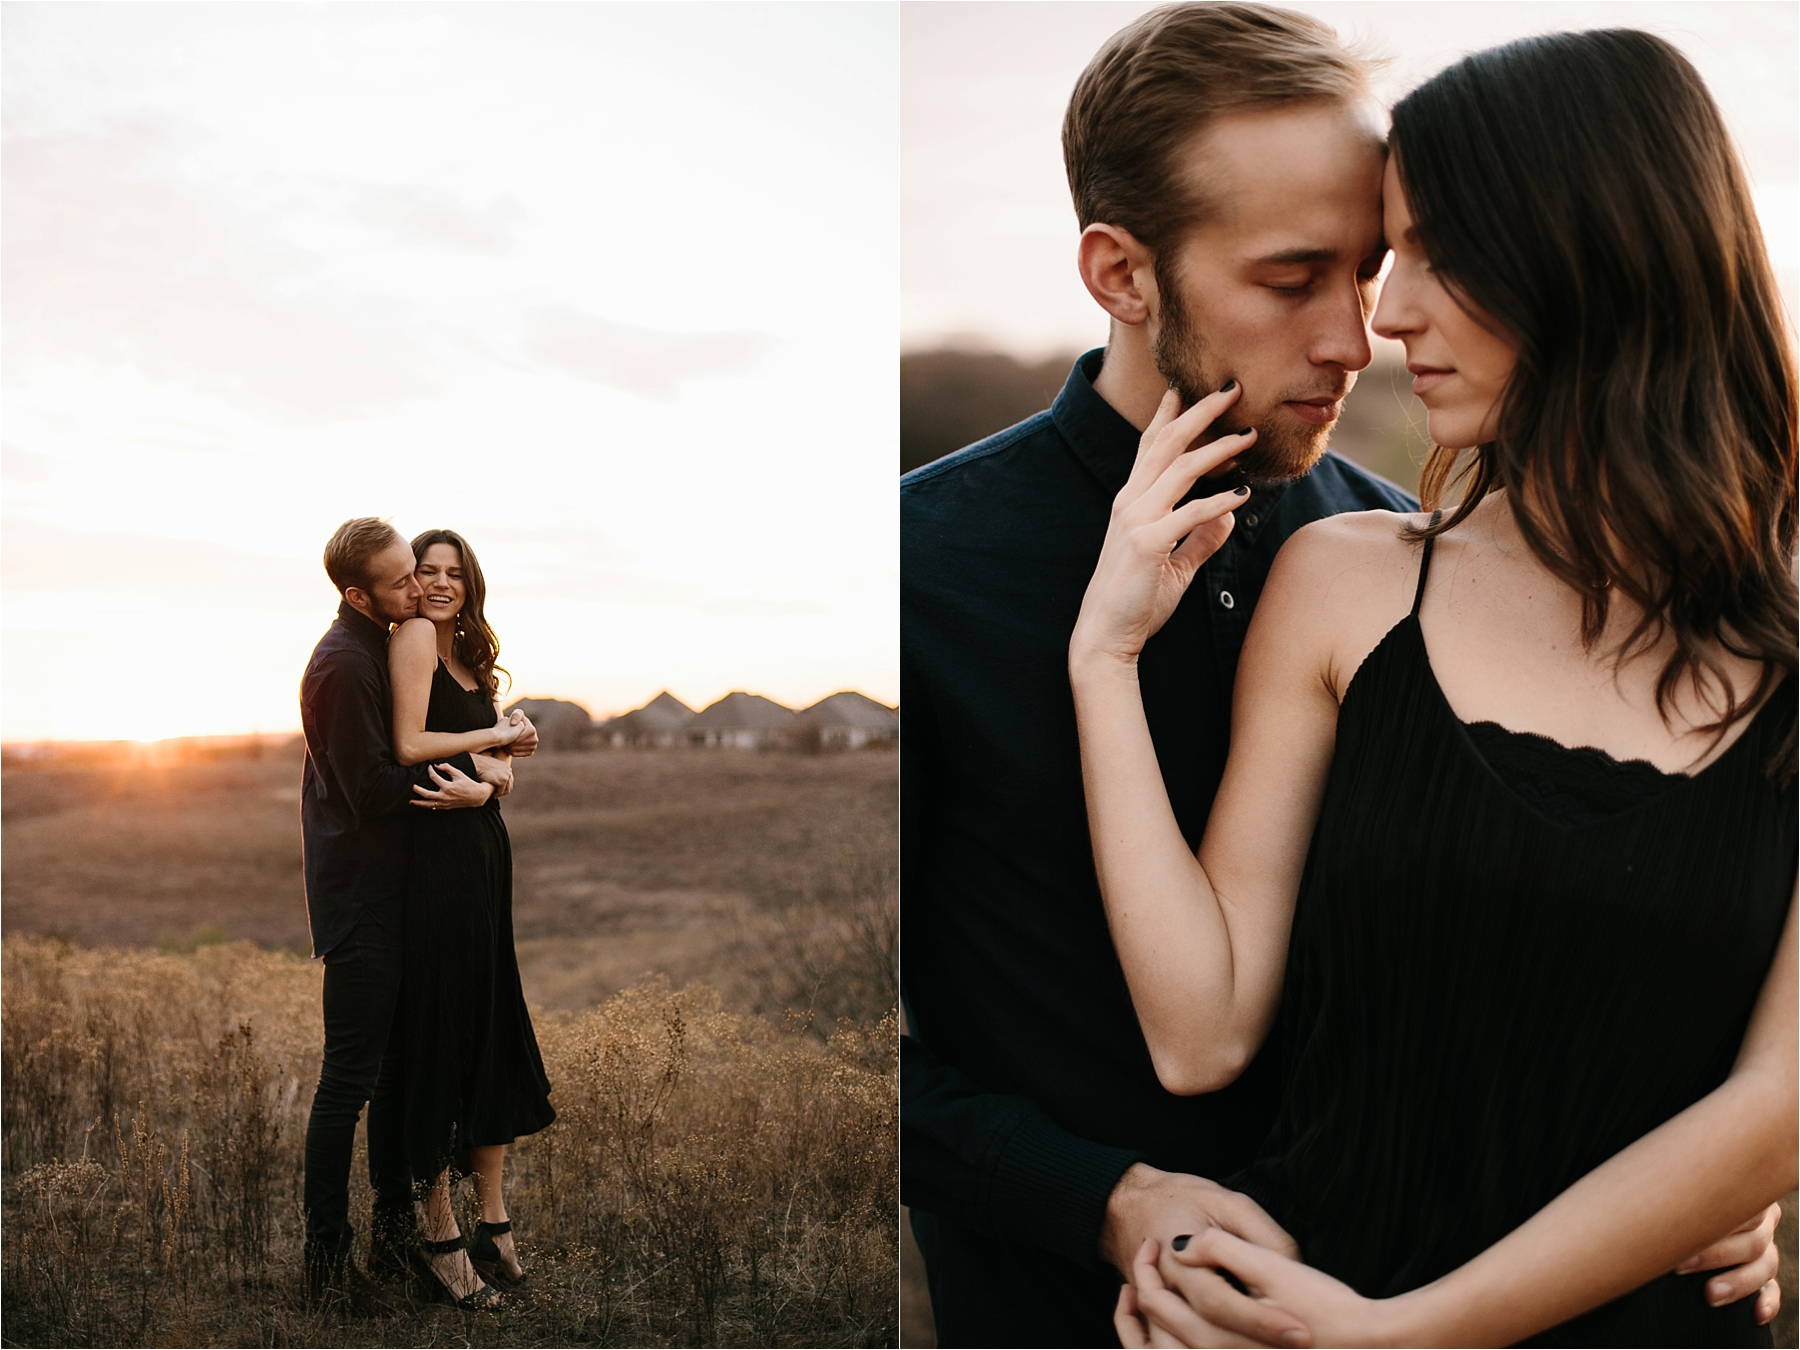 Trey + Phoebe __ a playful, intimate engagement session with dark_neutral outfit inspiration by North Texas Wedding Photographer Rachel Meagan Photography __ 58